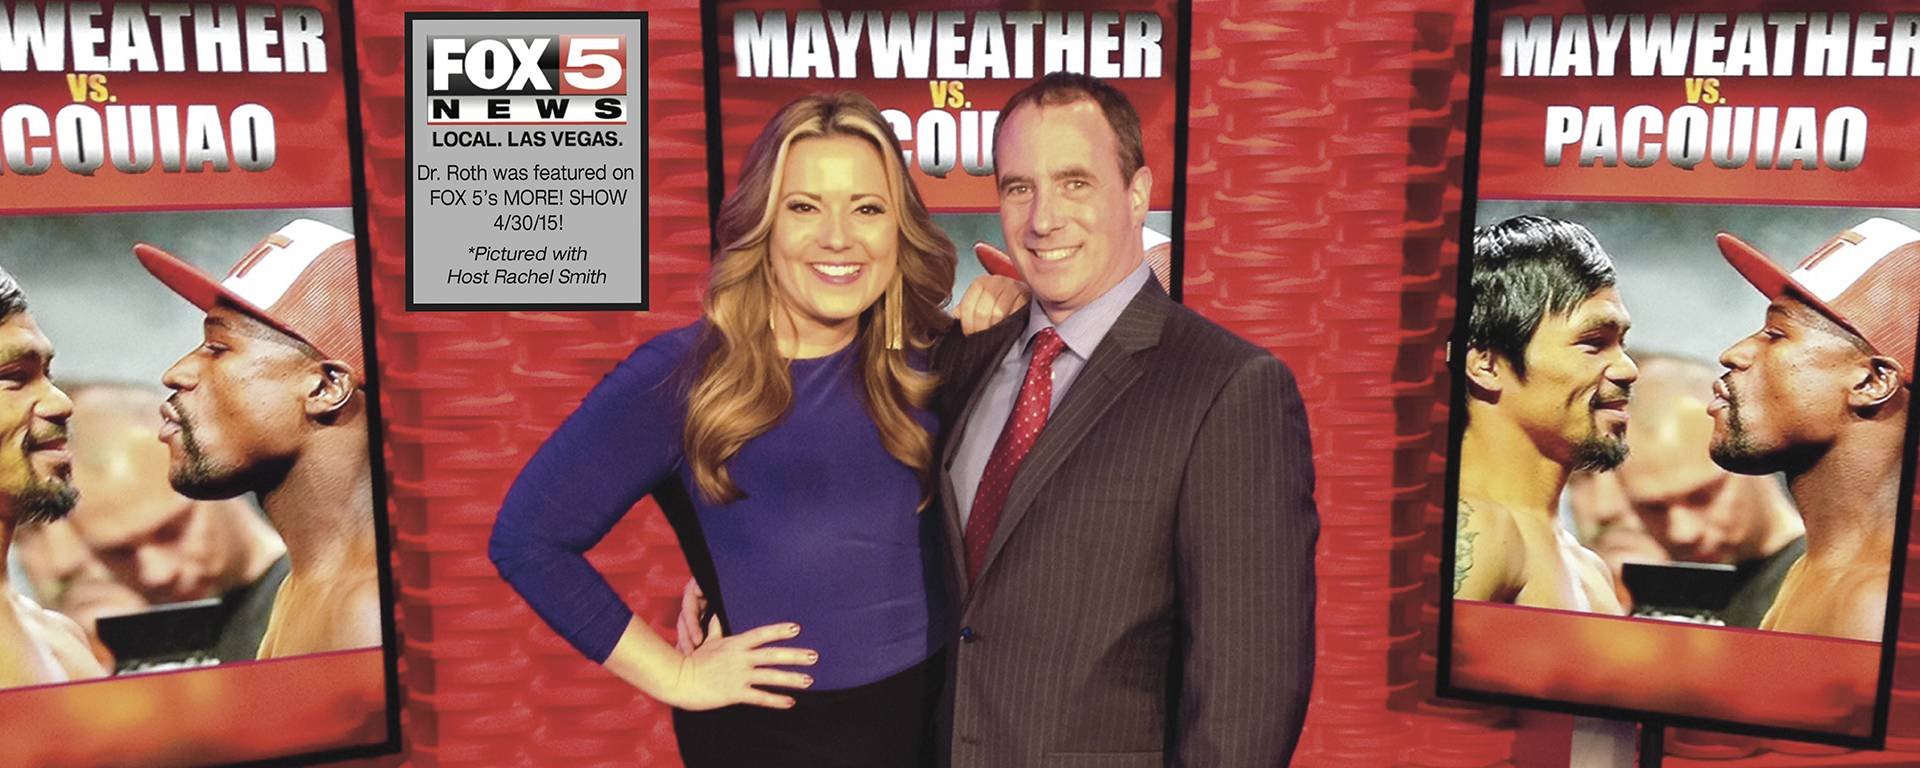 "Dr. Roth was interviewed on Fox 5's MORE! SHOW about his role as ""The Plastic Surgeon to Champions"" in light of the upcoming Mayweather / Pacquiao fight!"